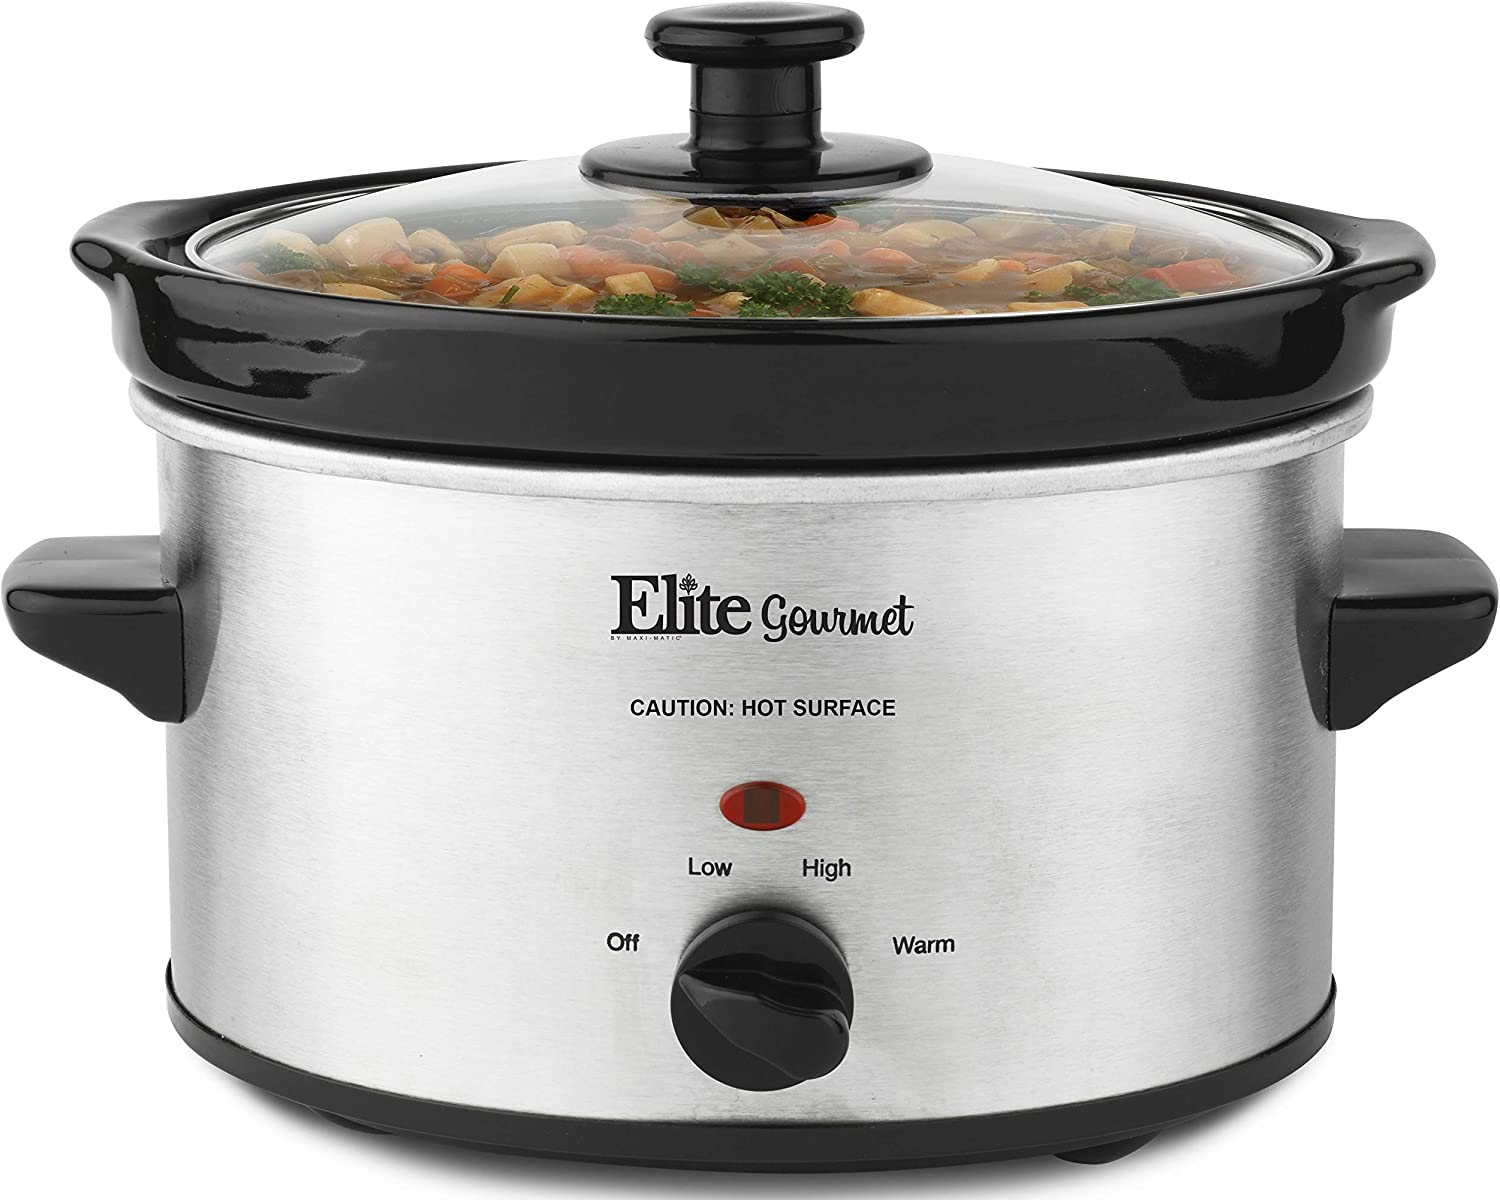 Elite Gourmet MST-275XS Electric Slow Cooker, Adjustable Temp, Entrees, Sauces, Stews & Dips, Dishwasher Glass Lid &Ceramic Pot, 2Qt Capacity, Stainless Steel (Renewed)